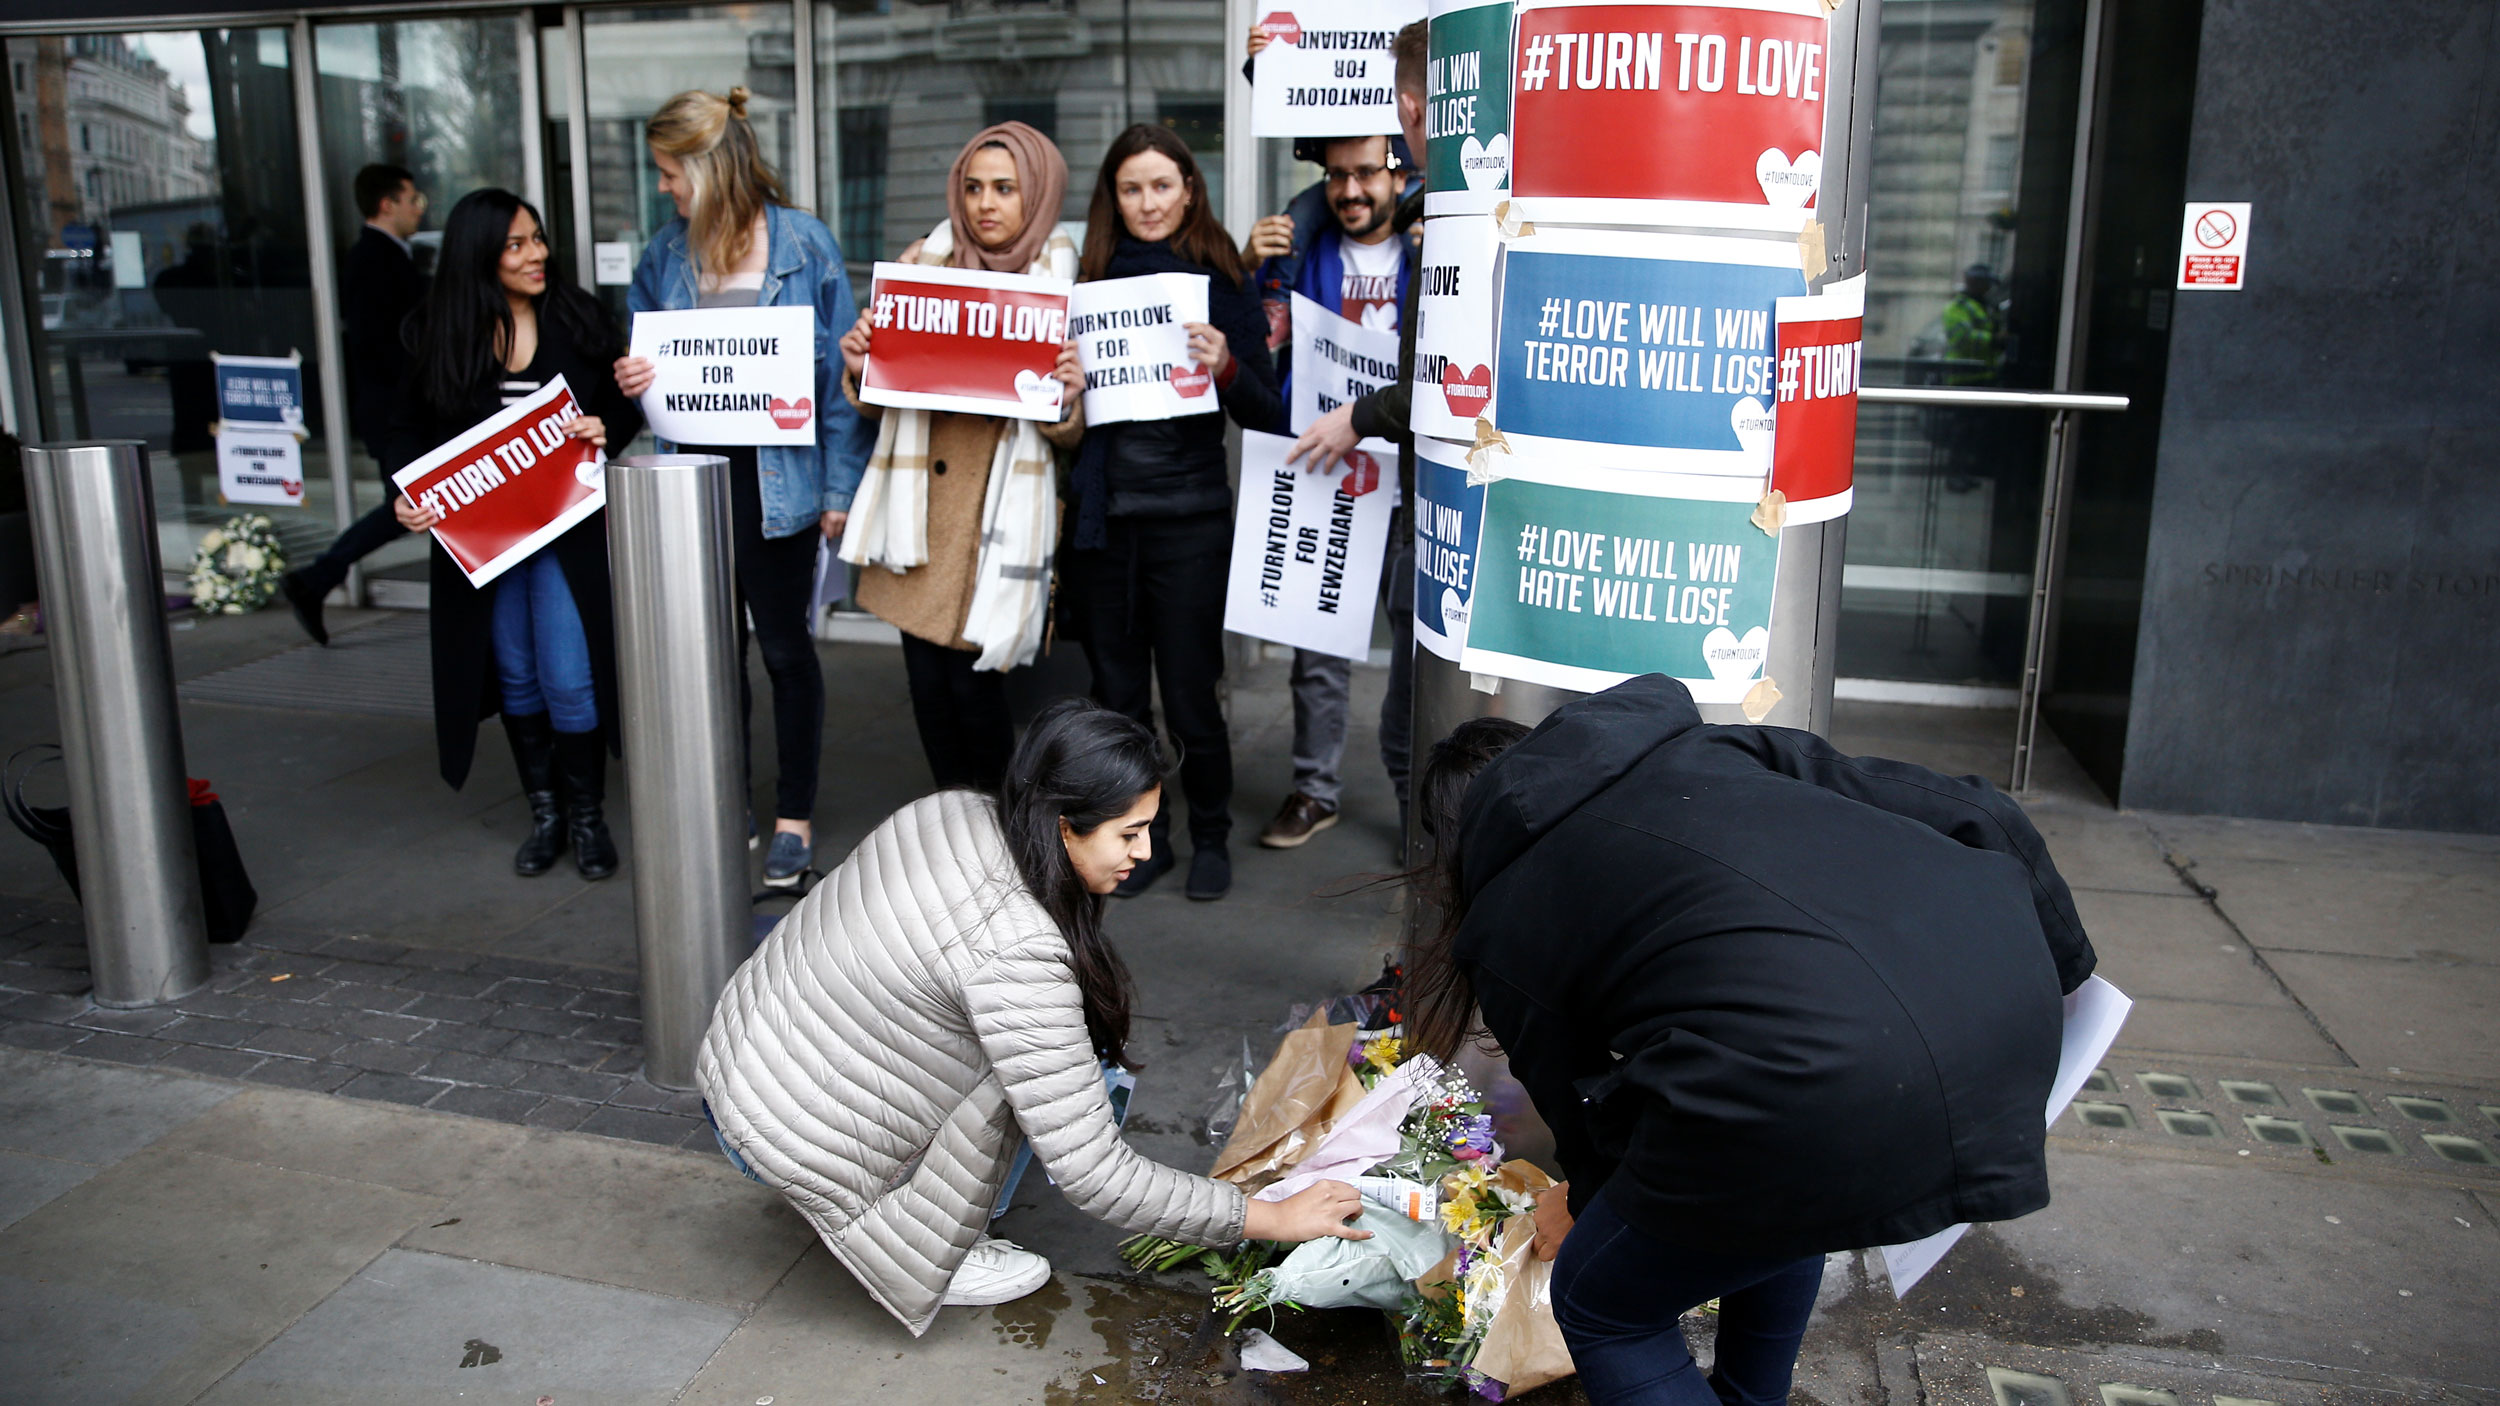 """A group of people leave flowers outside a building with signs table to a column that say """"#turntolove"""" and """"#love will win terror will lose"""""""